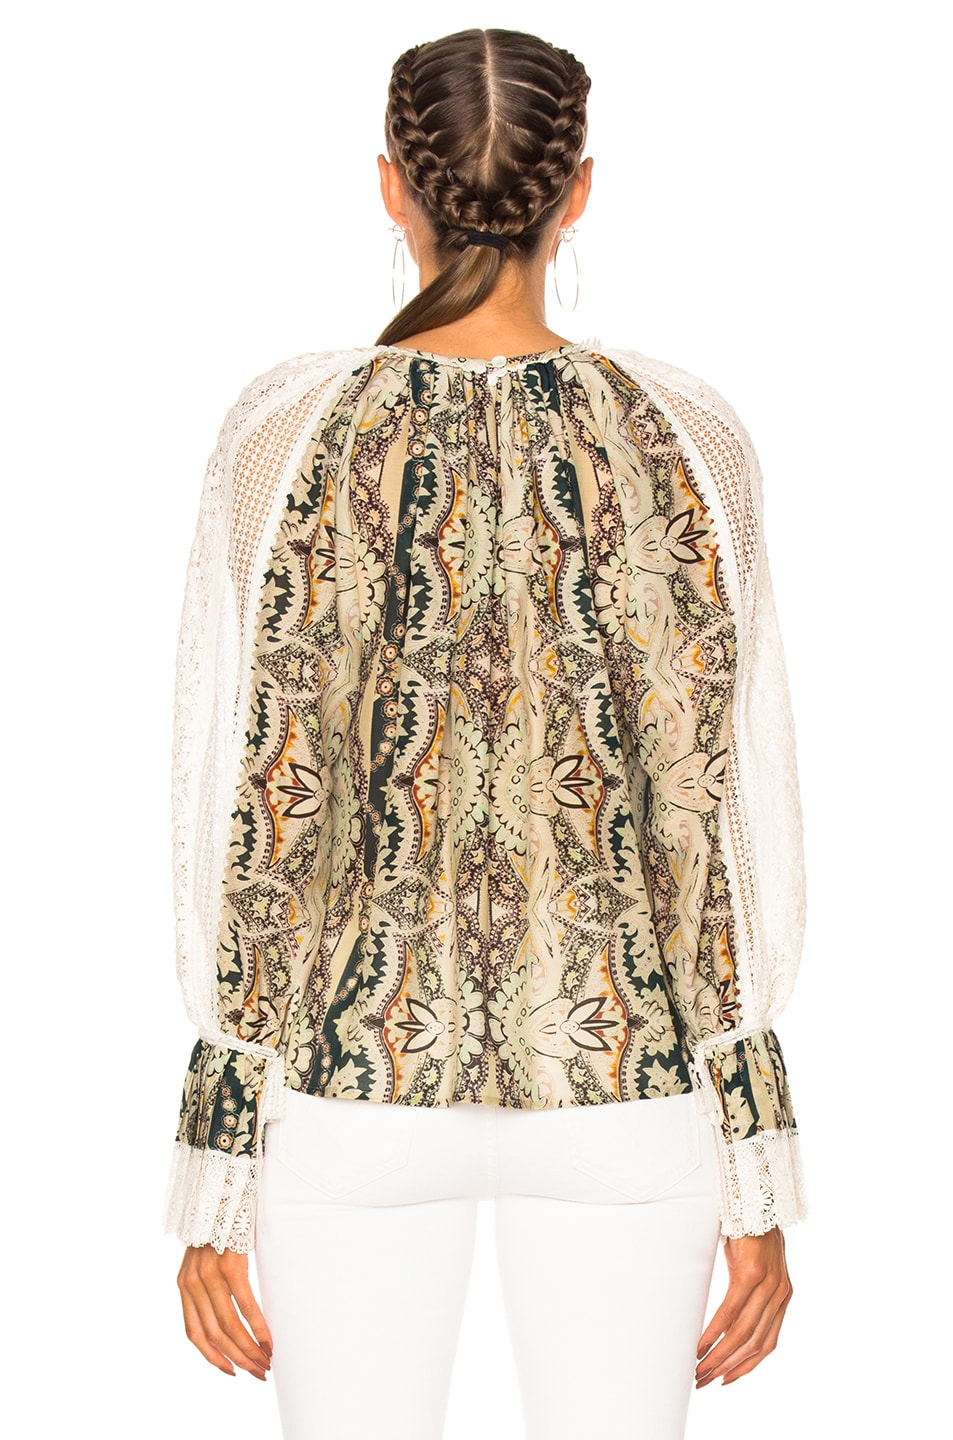 ETRO Printed Cotton And Silk Blouse With Lace